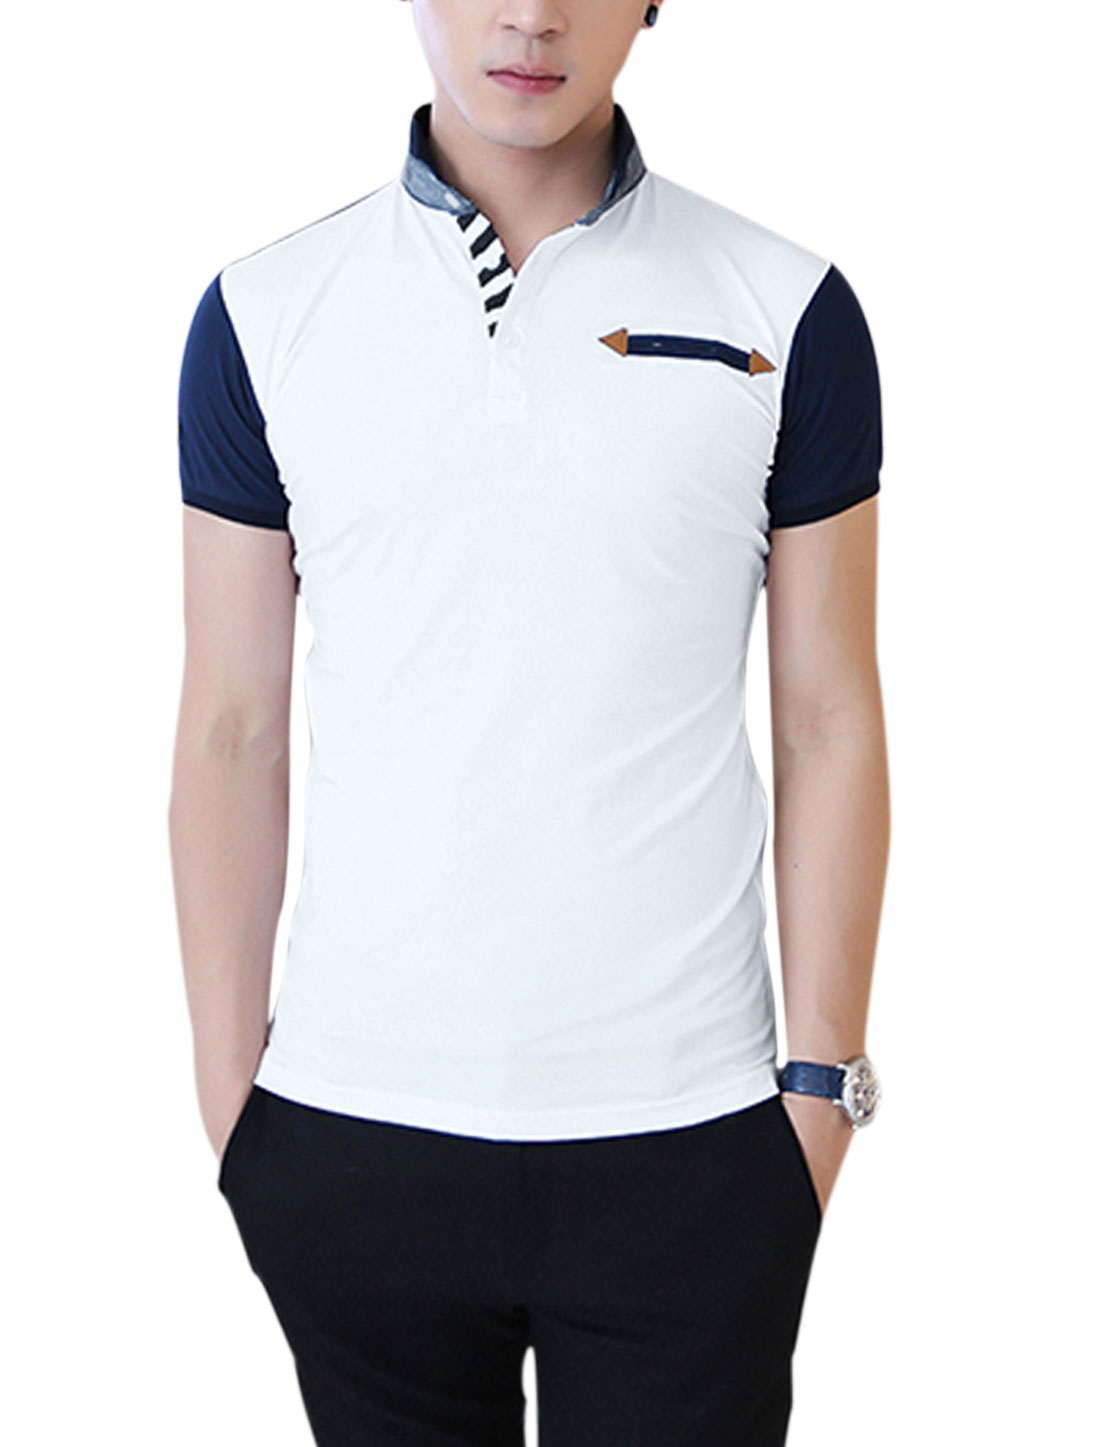 Men Stand Collar Short Sleeve Colorblock Polo Shirt White M